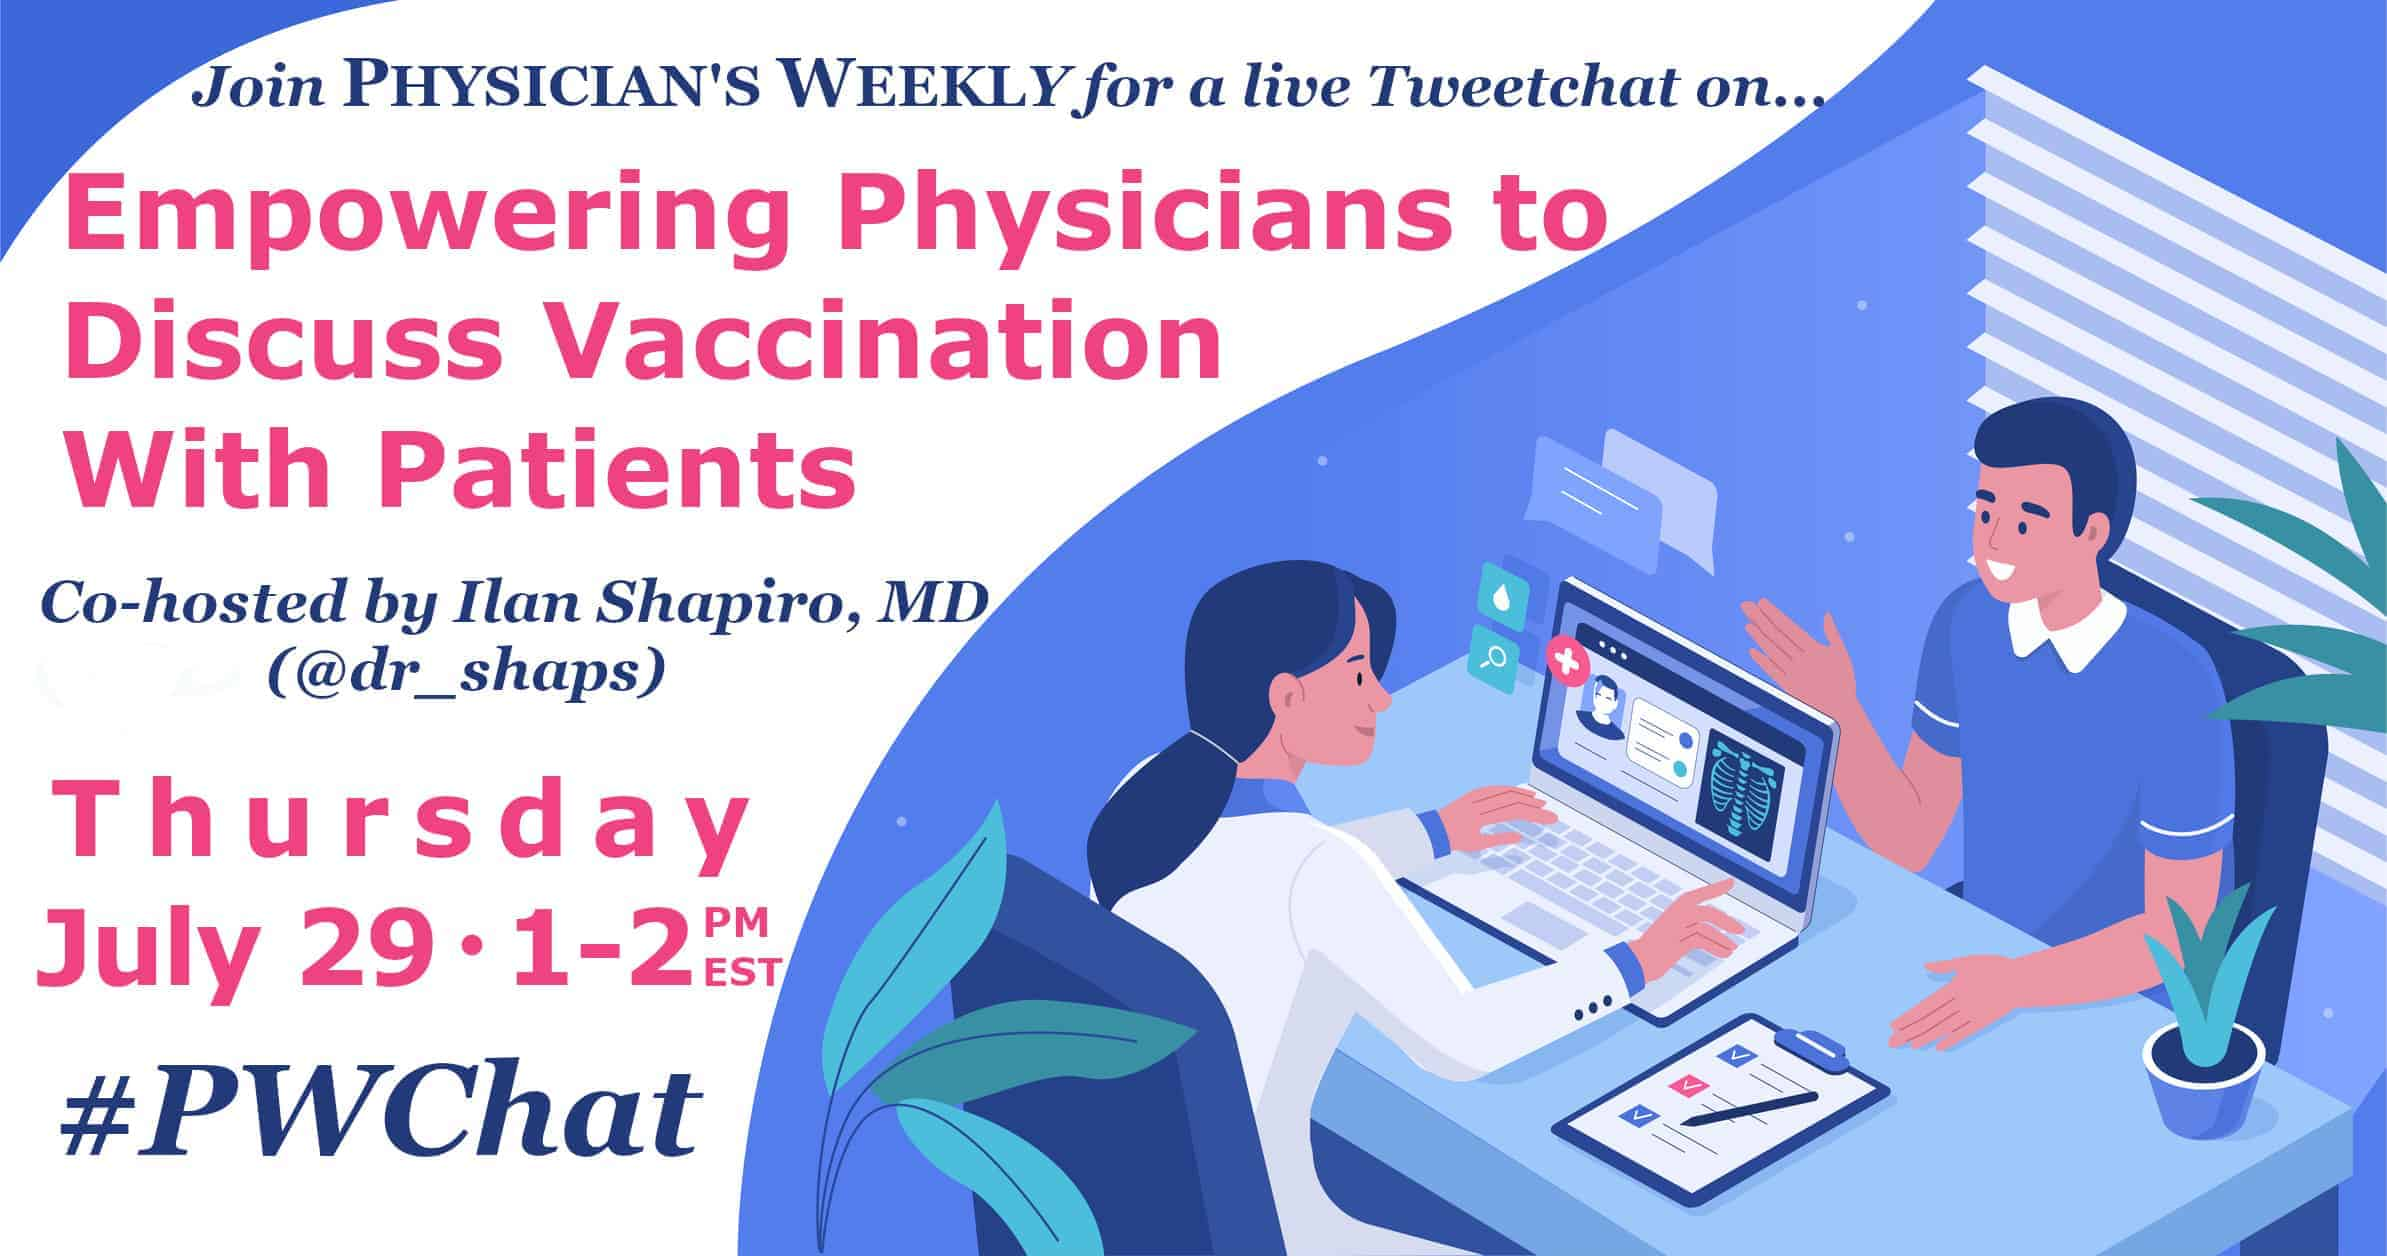 #PWChat Recap: Empowering Physicians to Discuss Vaccination With Patients